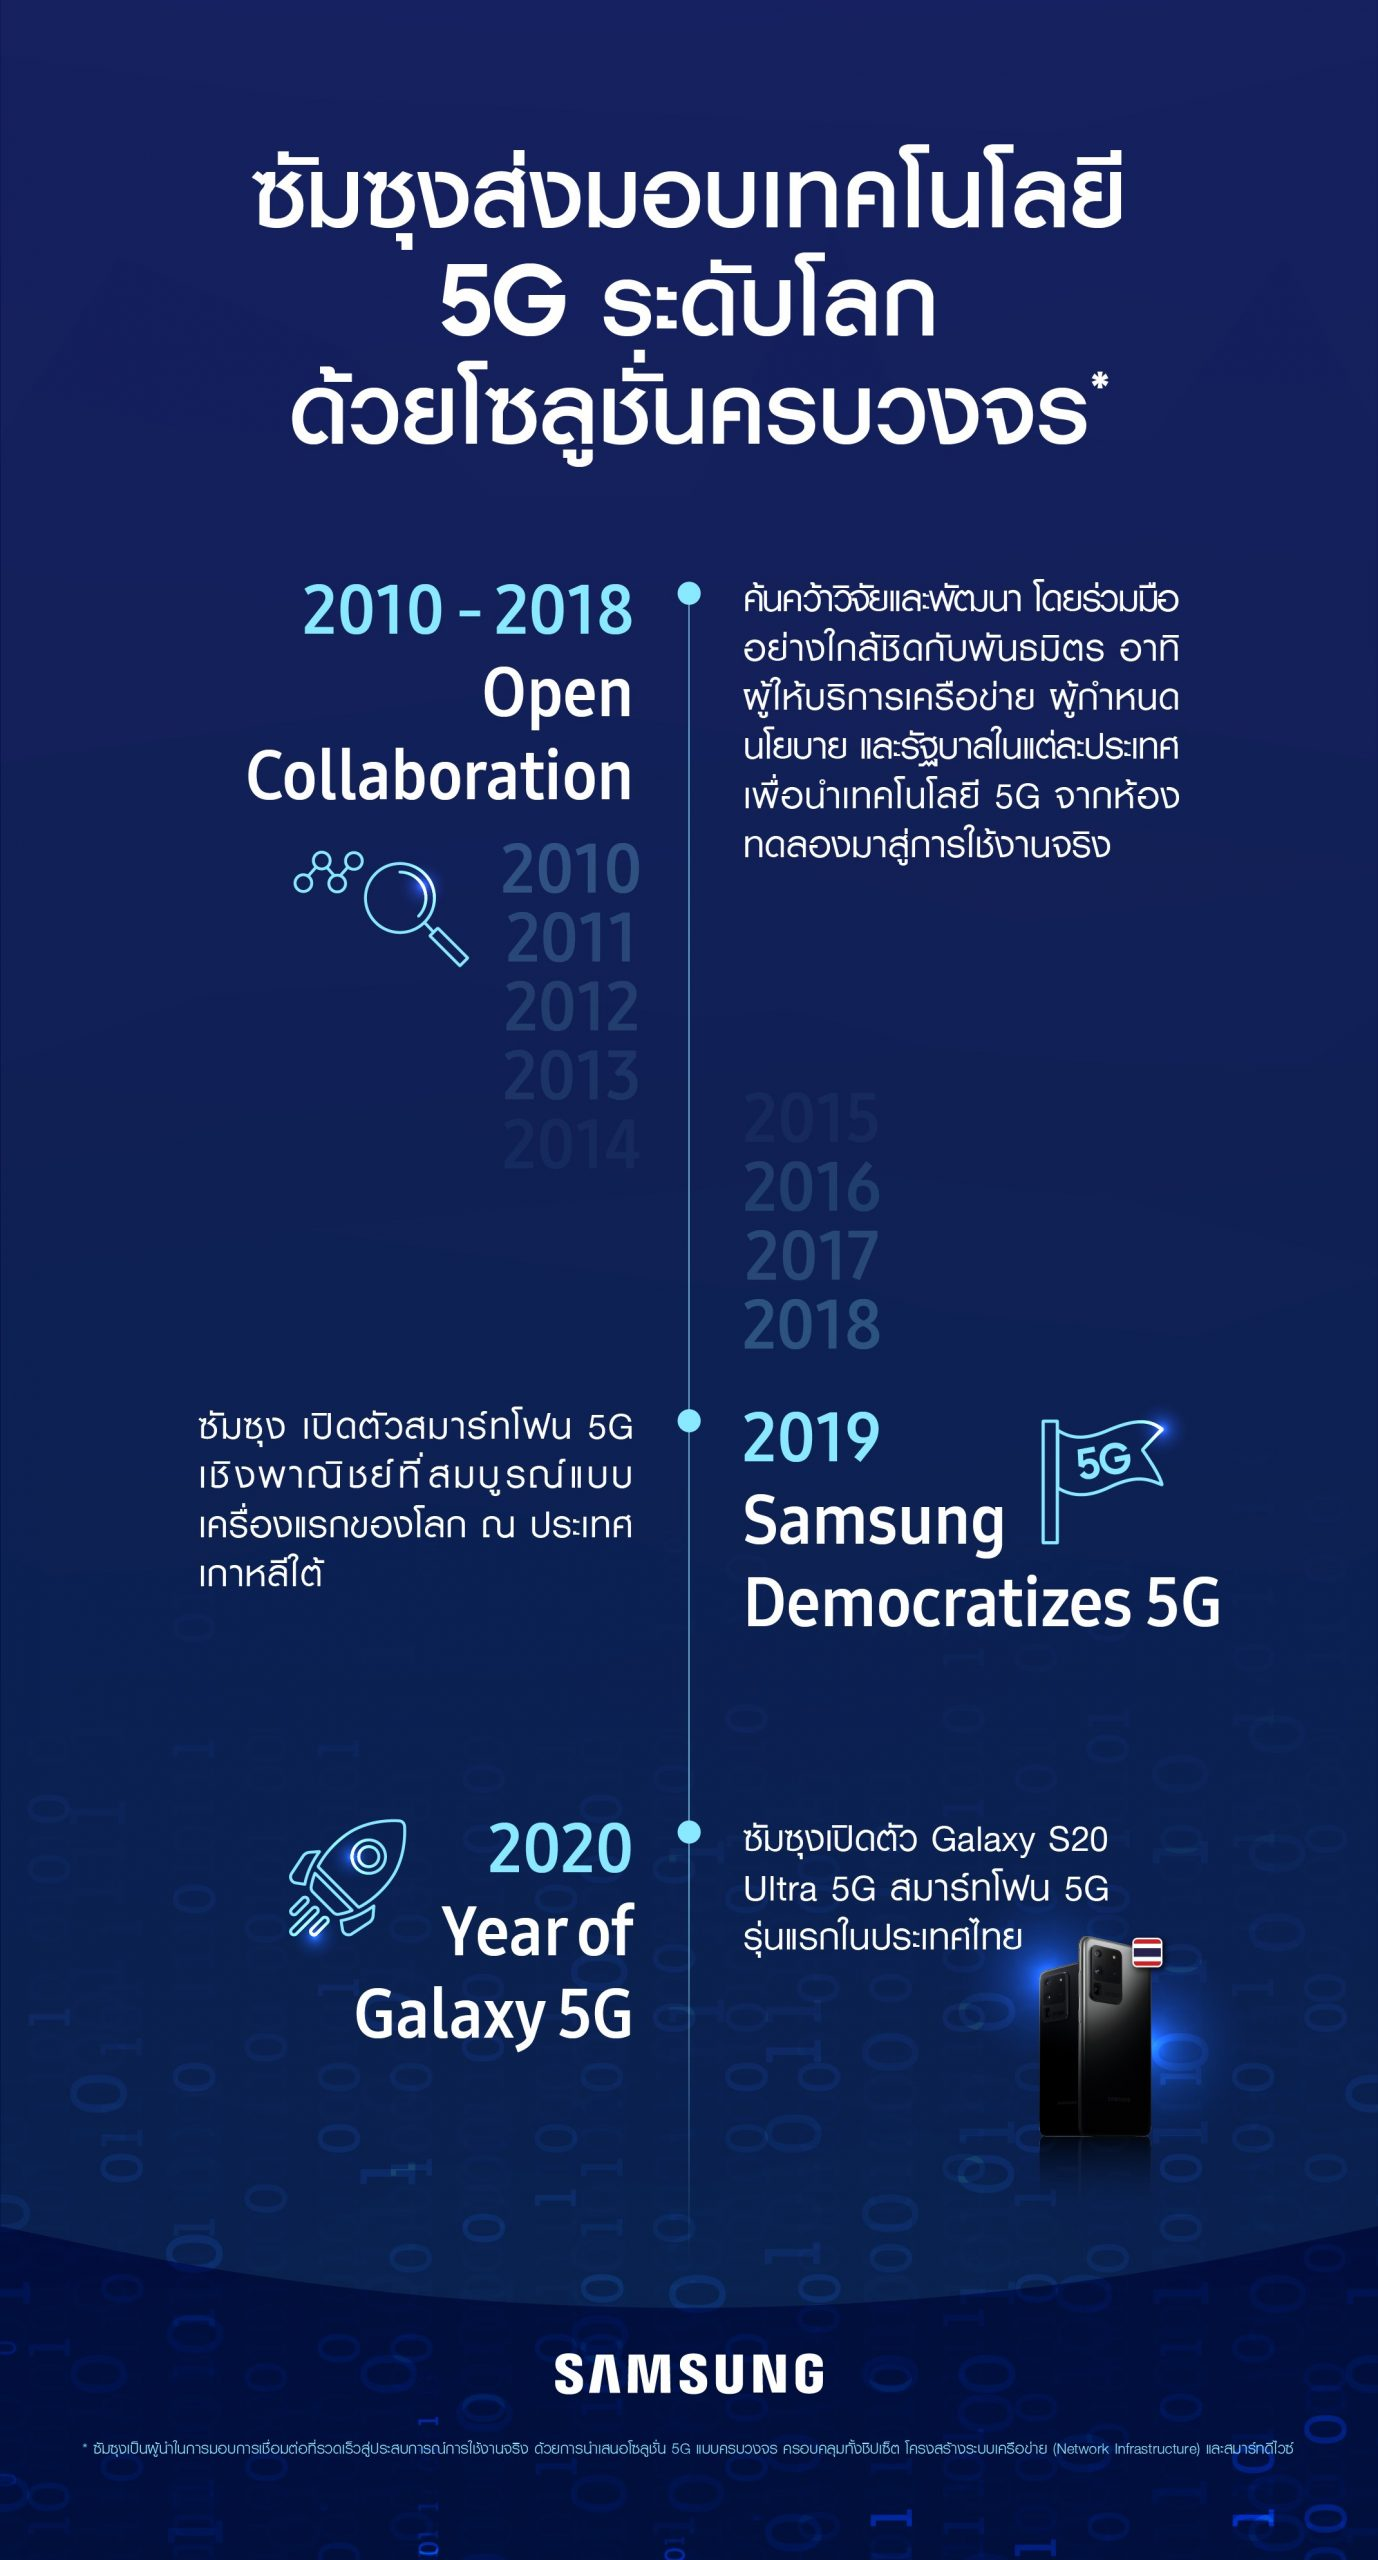 Galaxy 5G Year in Review_TH 02